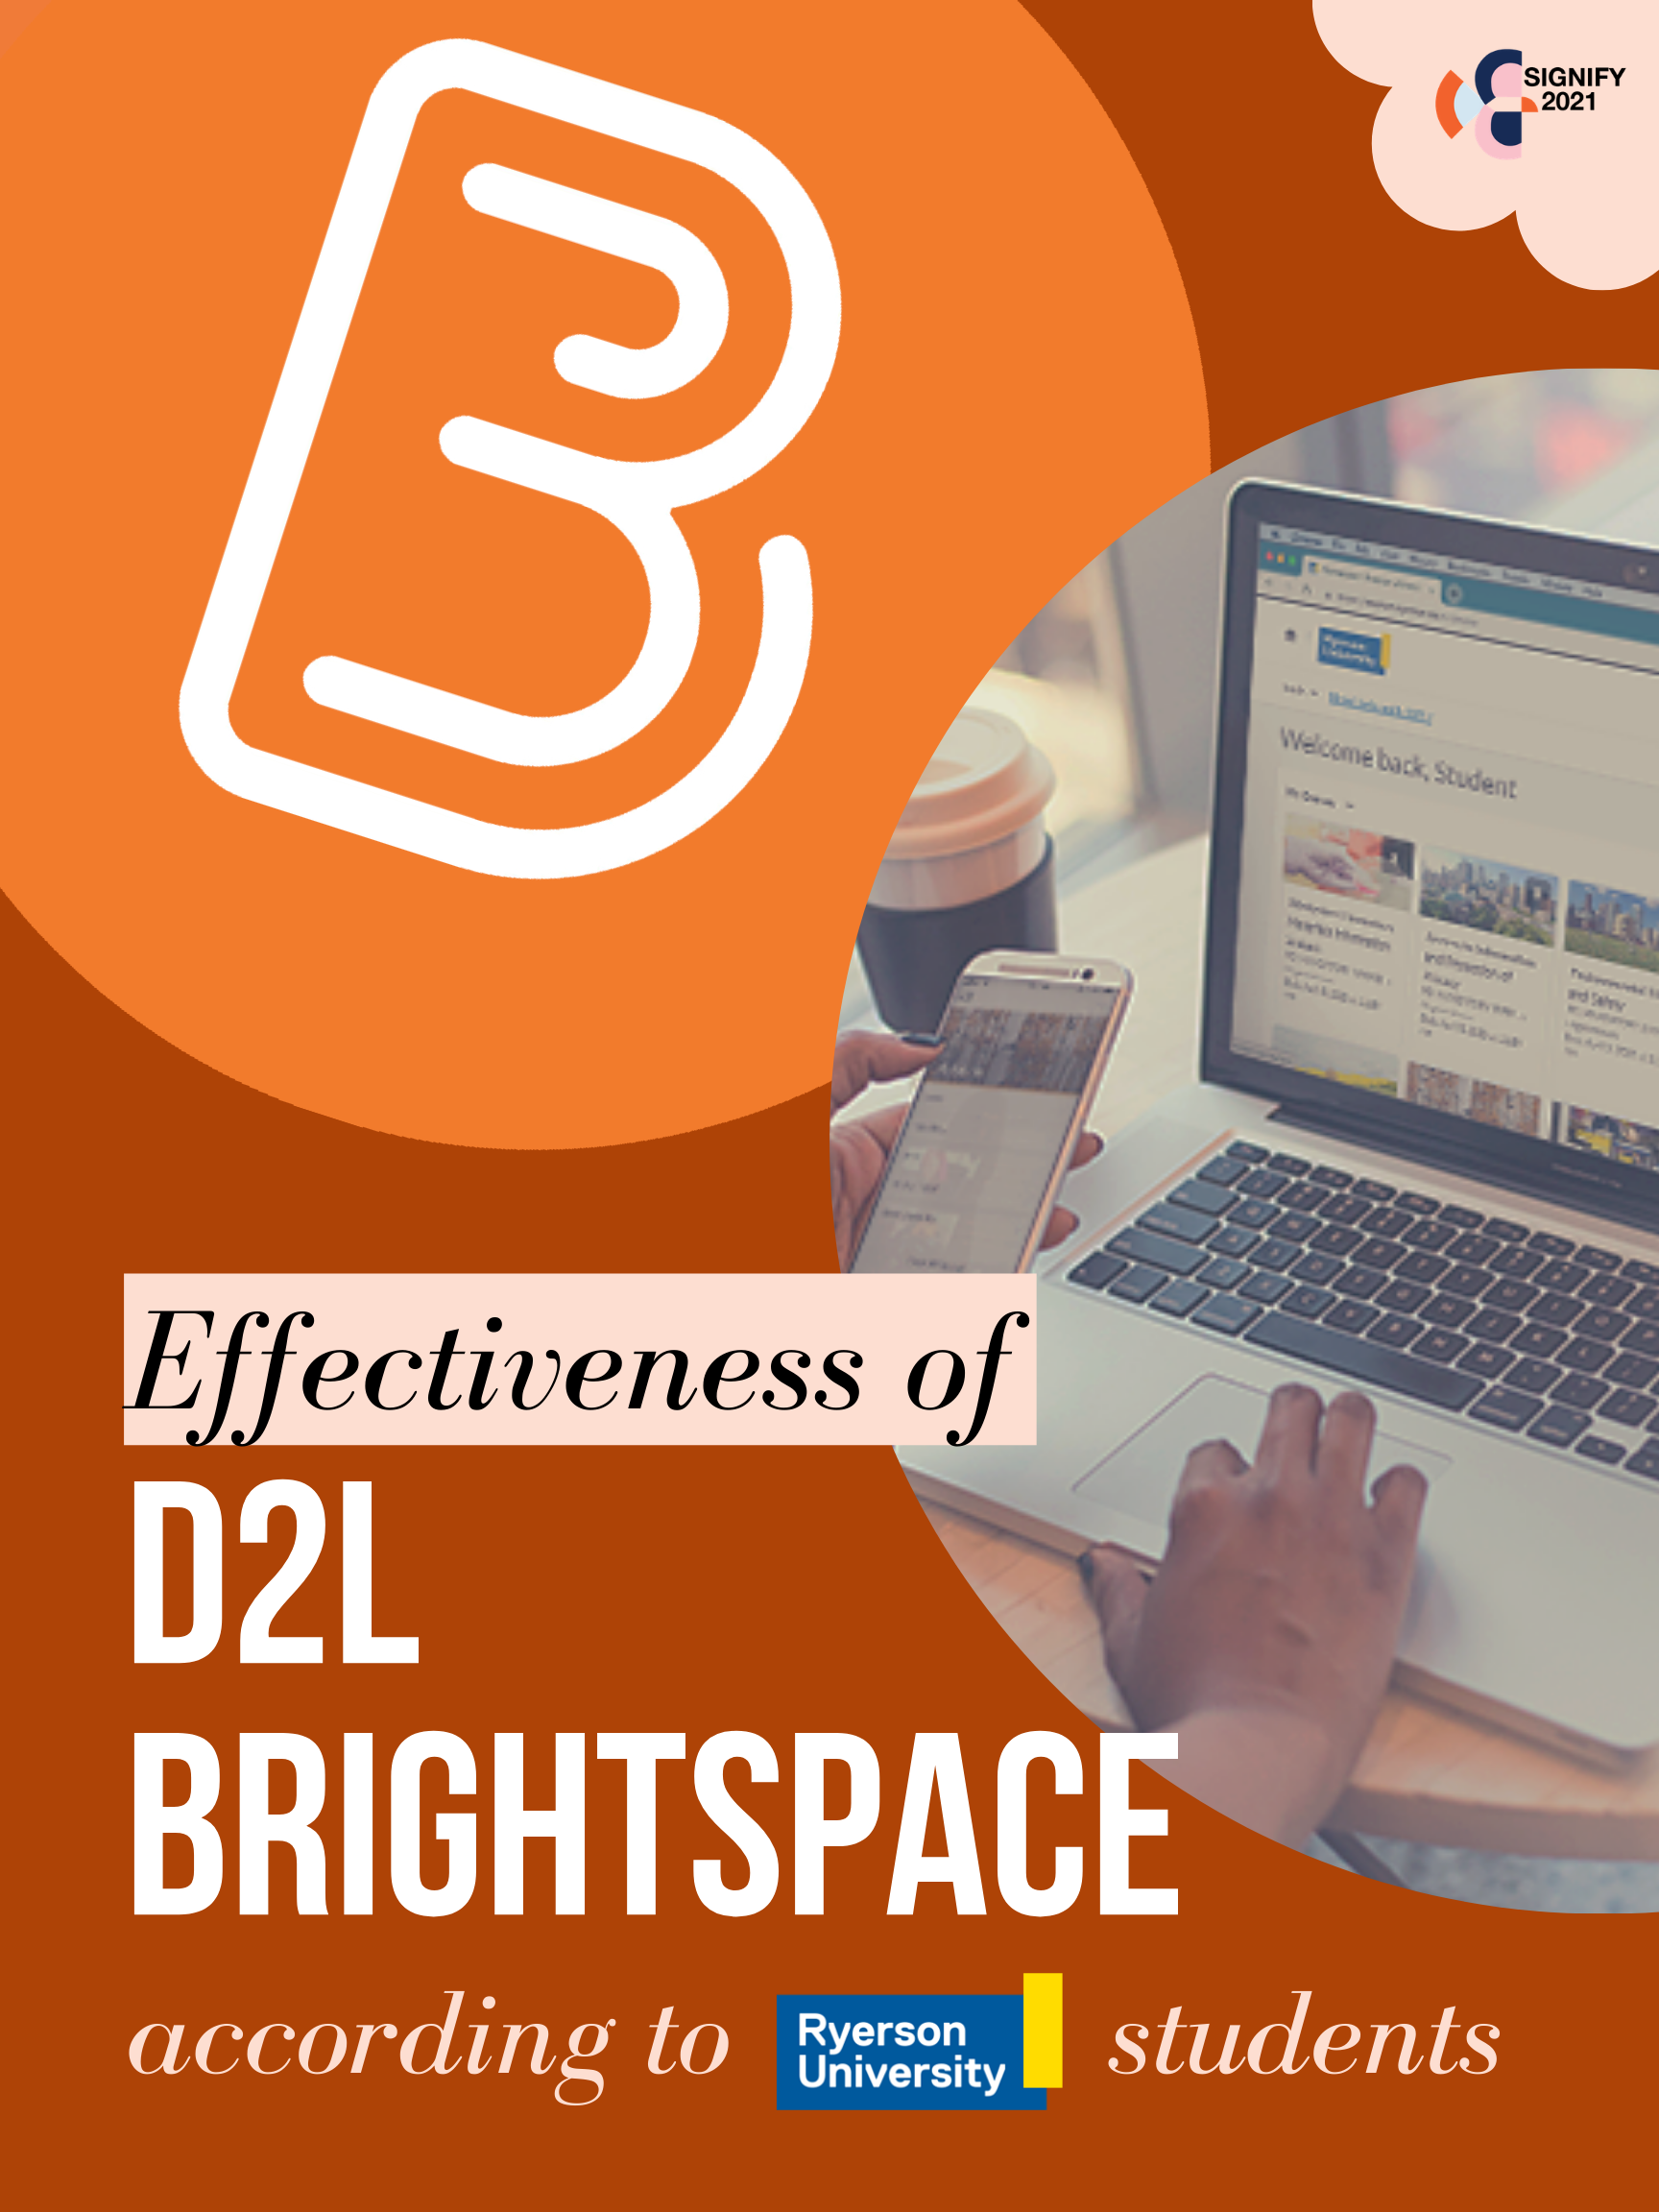 Effectiveness of D2L Brightspace according to Ryerson students